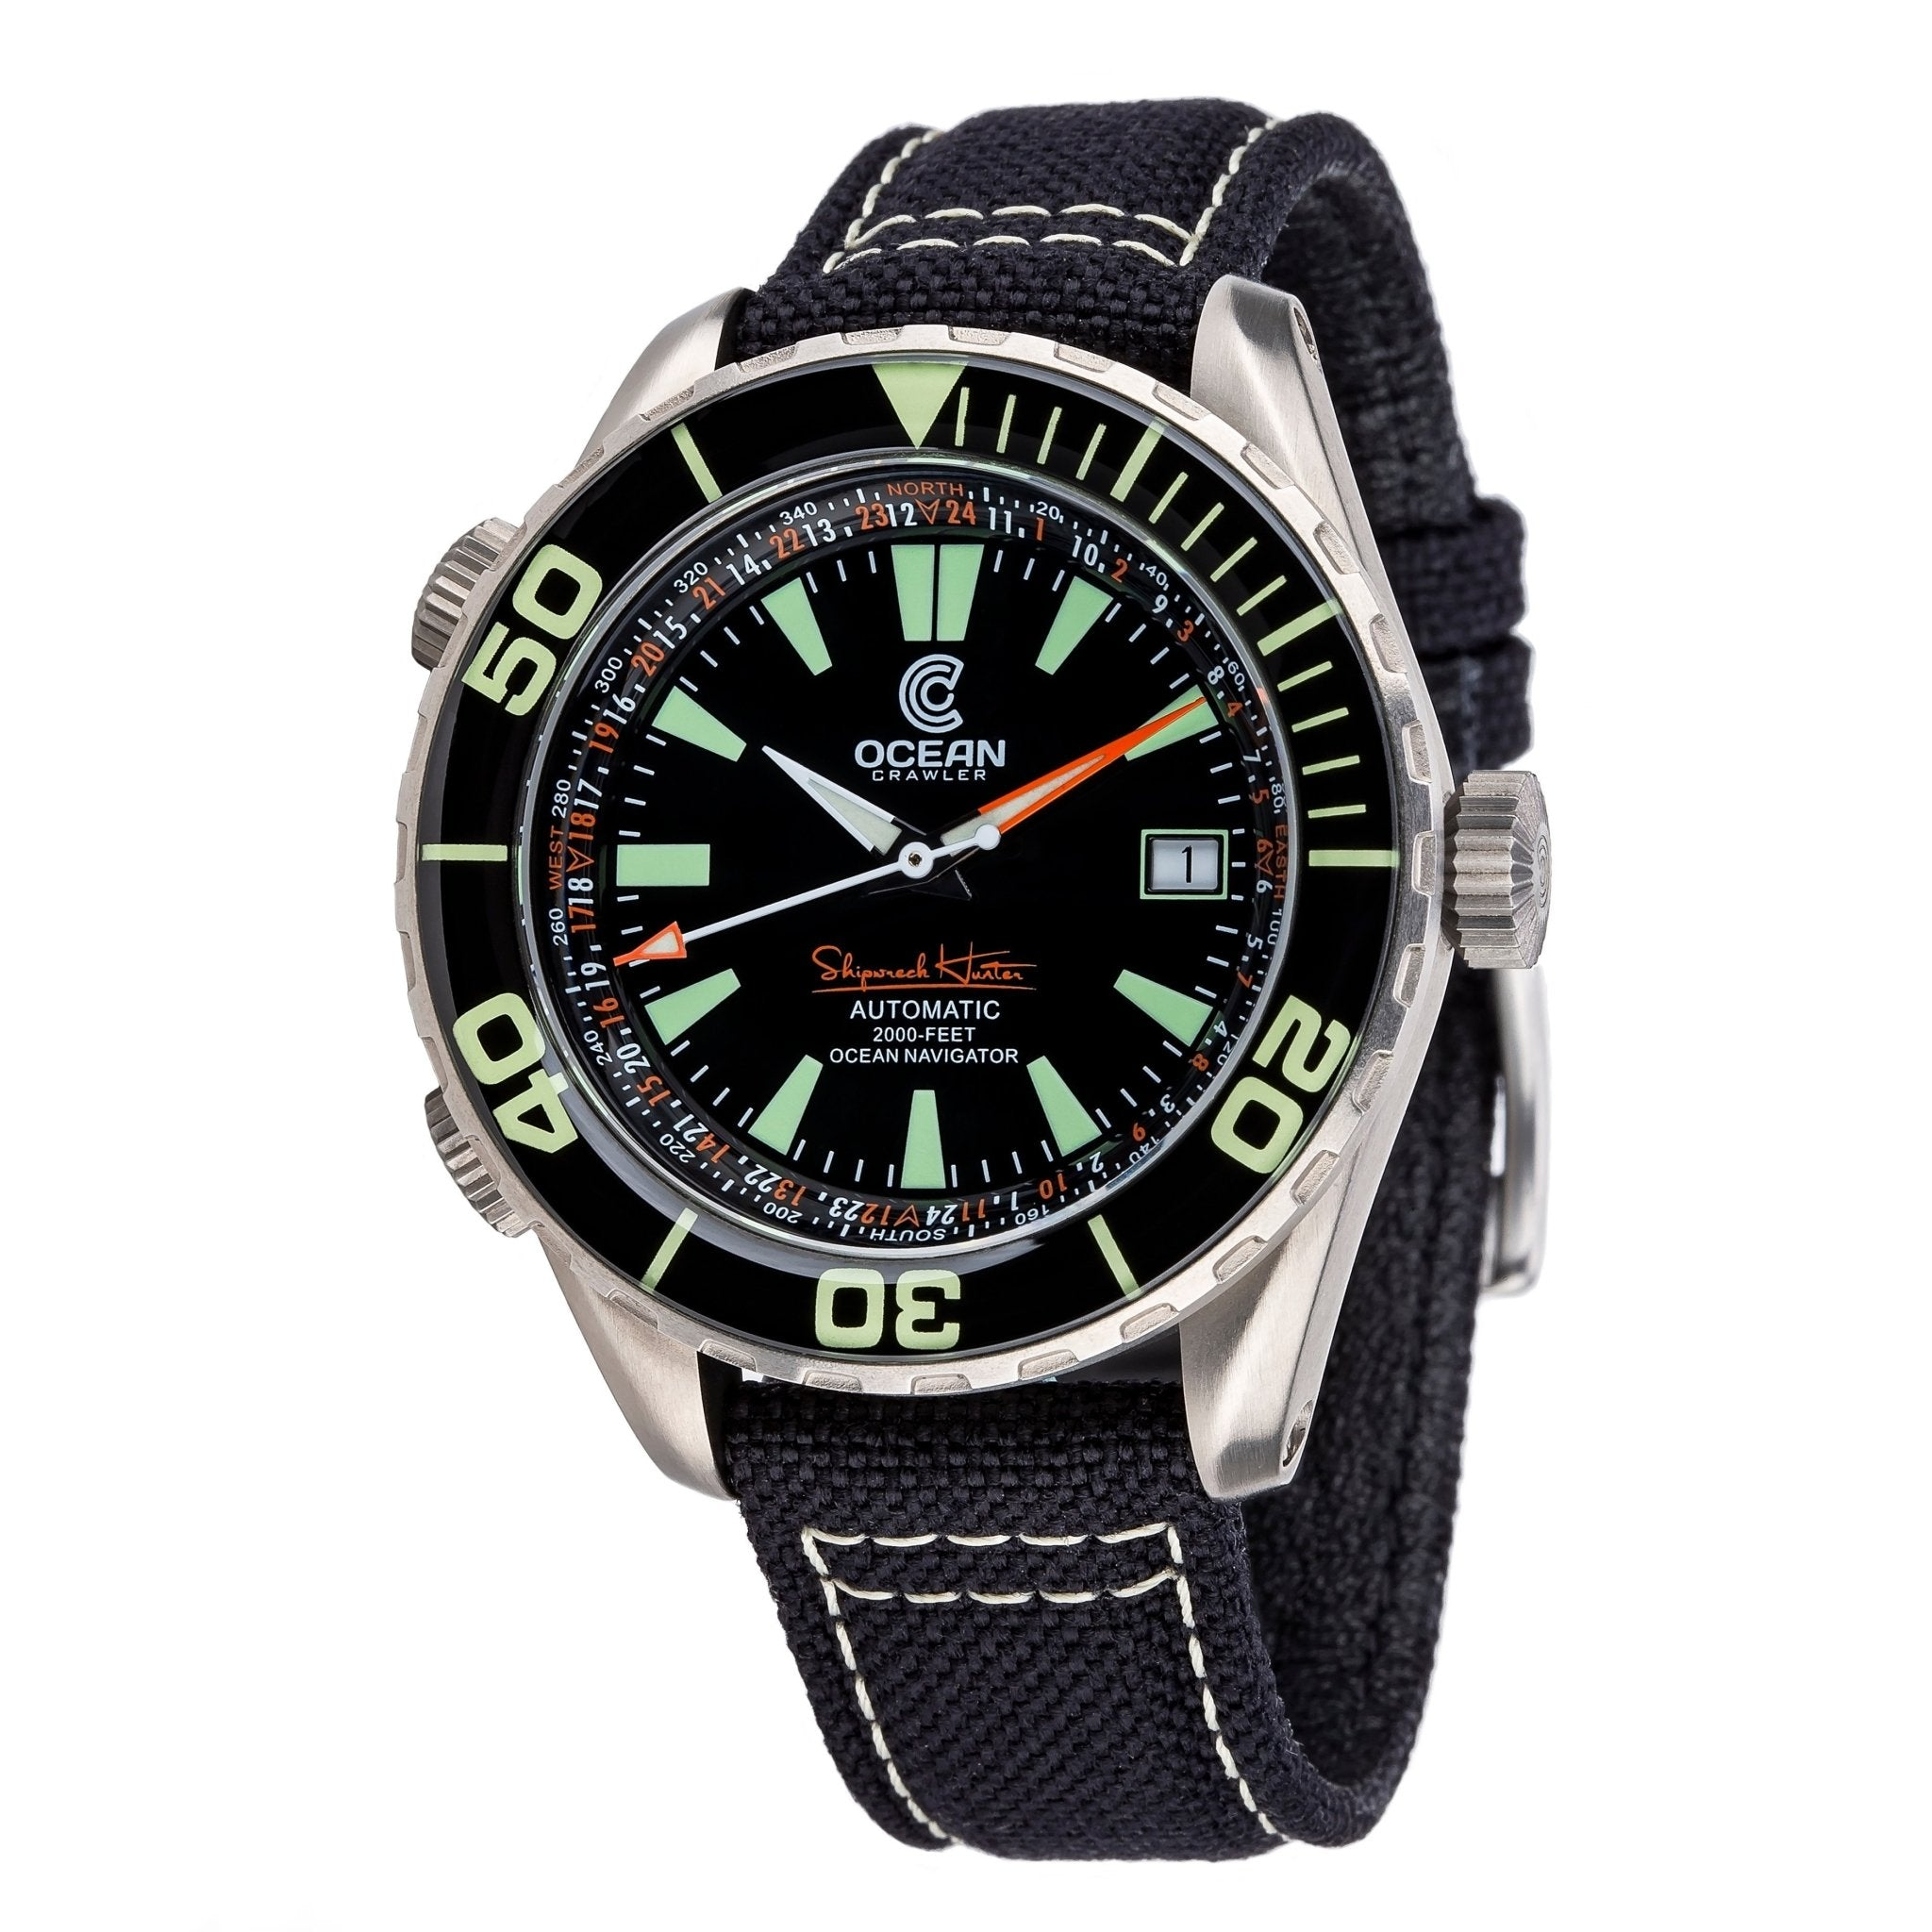 Ocean Crawler Ocean Navigator - Black - Ocean Crawler Watch Co.